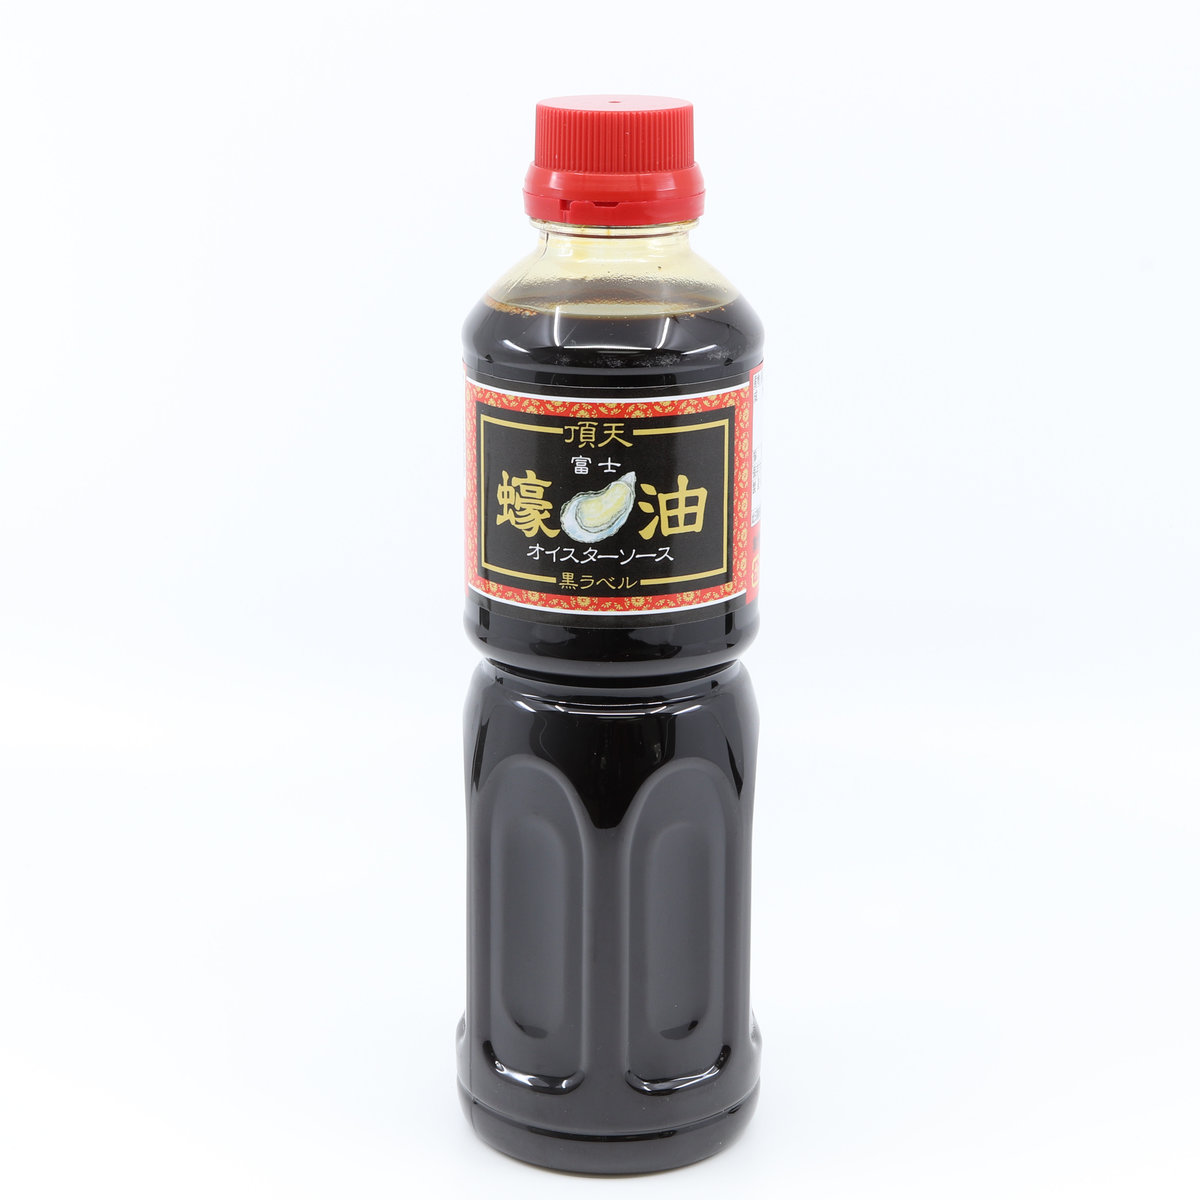 Japanese Oyster Sauce